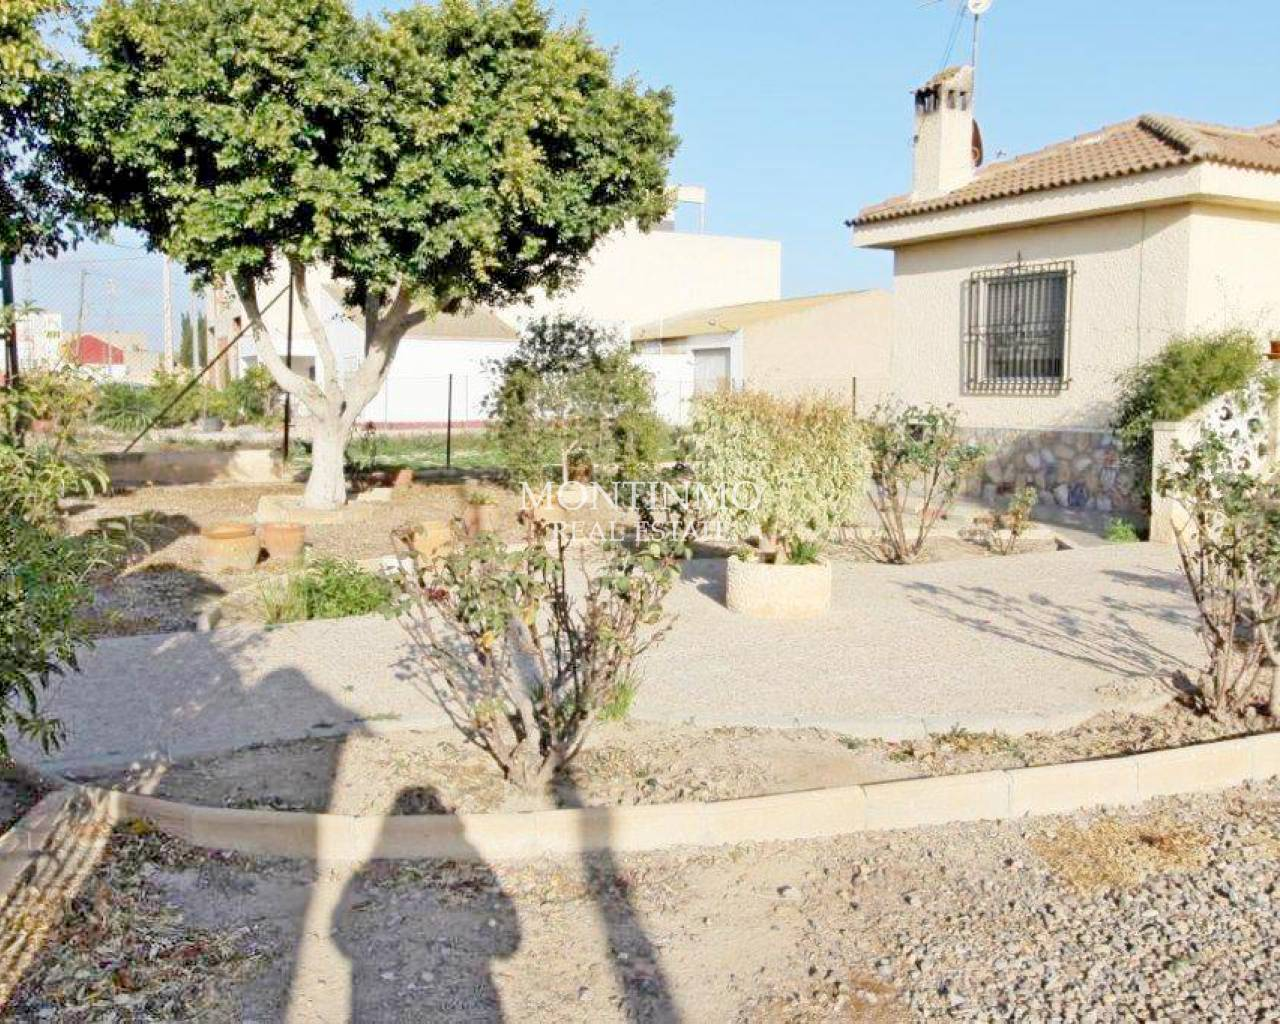 Sale - Cottage - Callosa del Segura